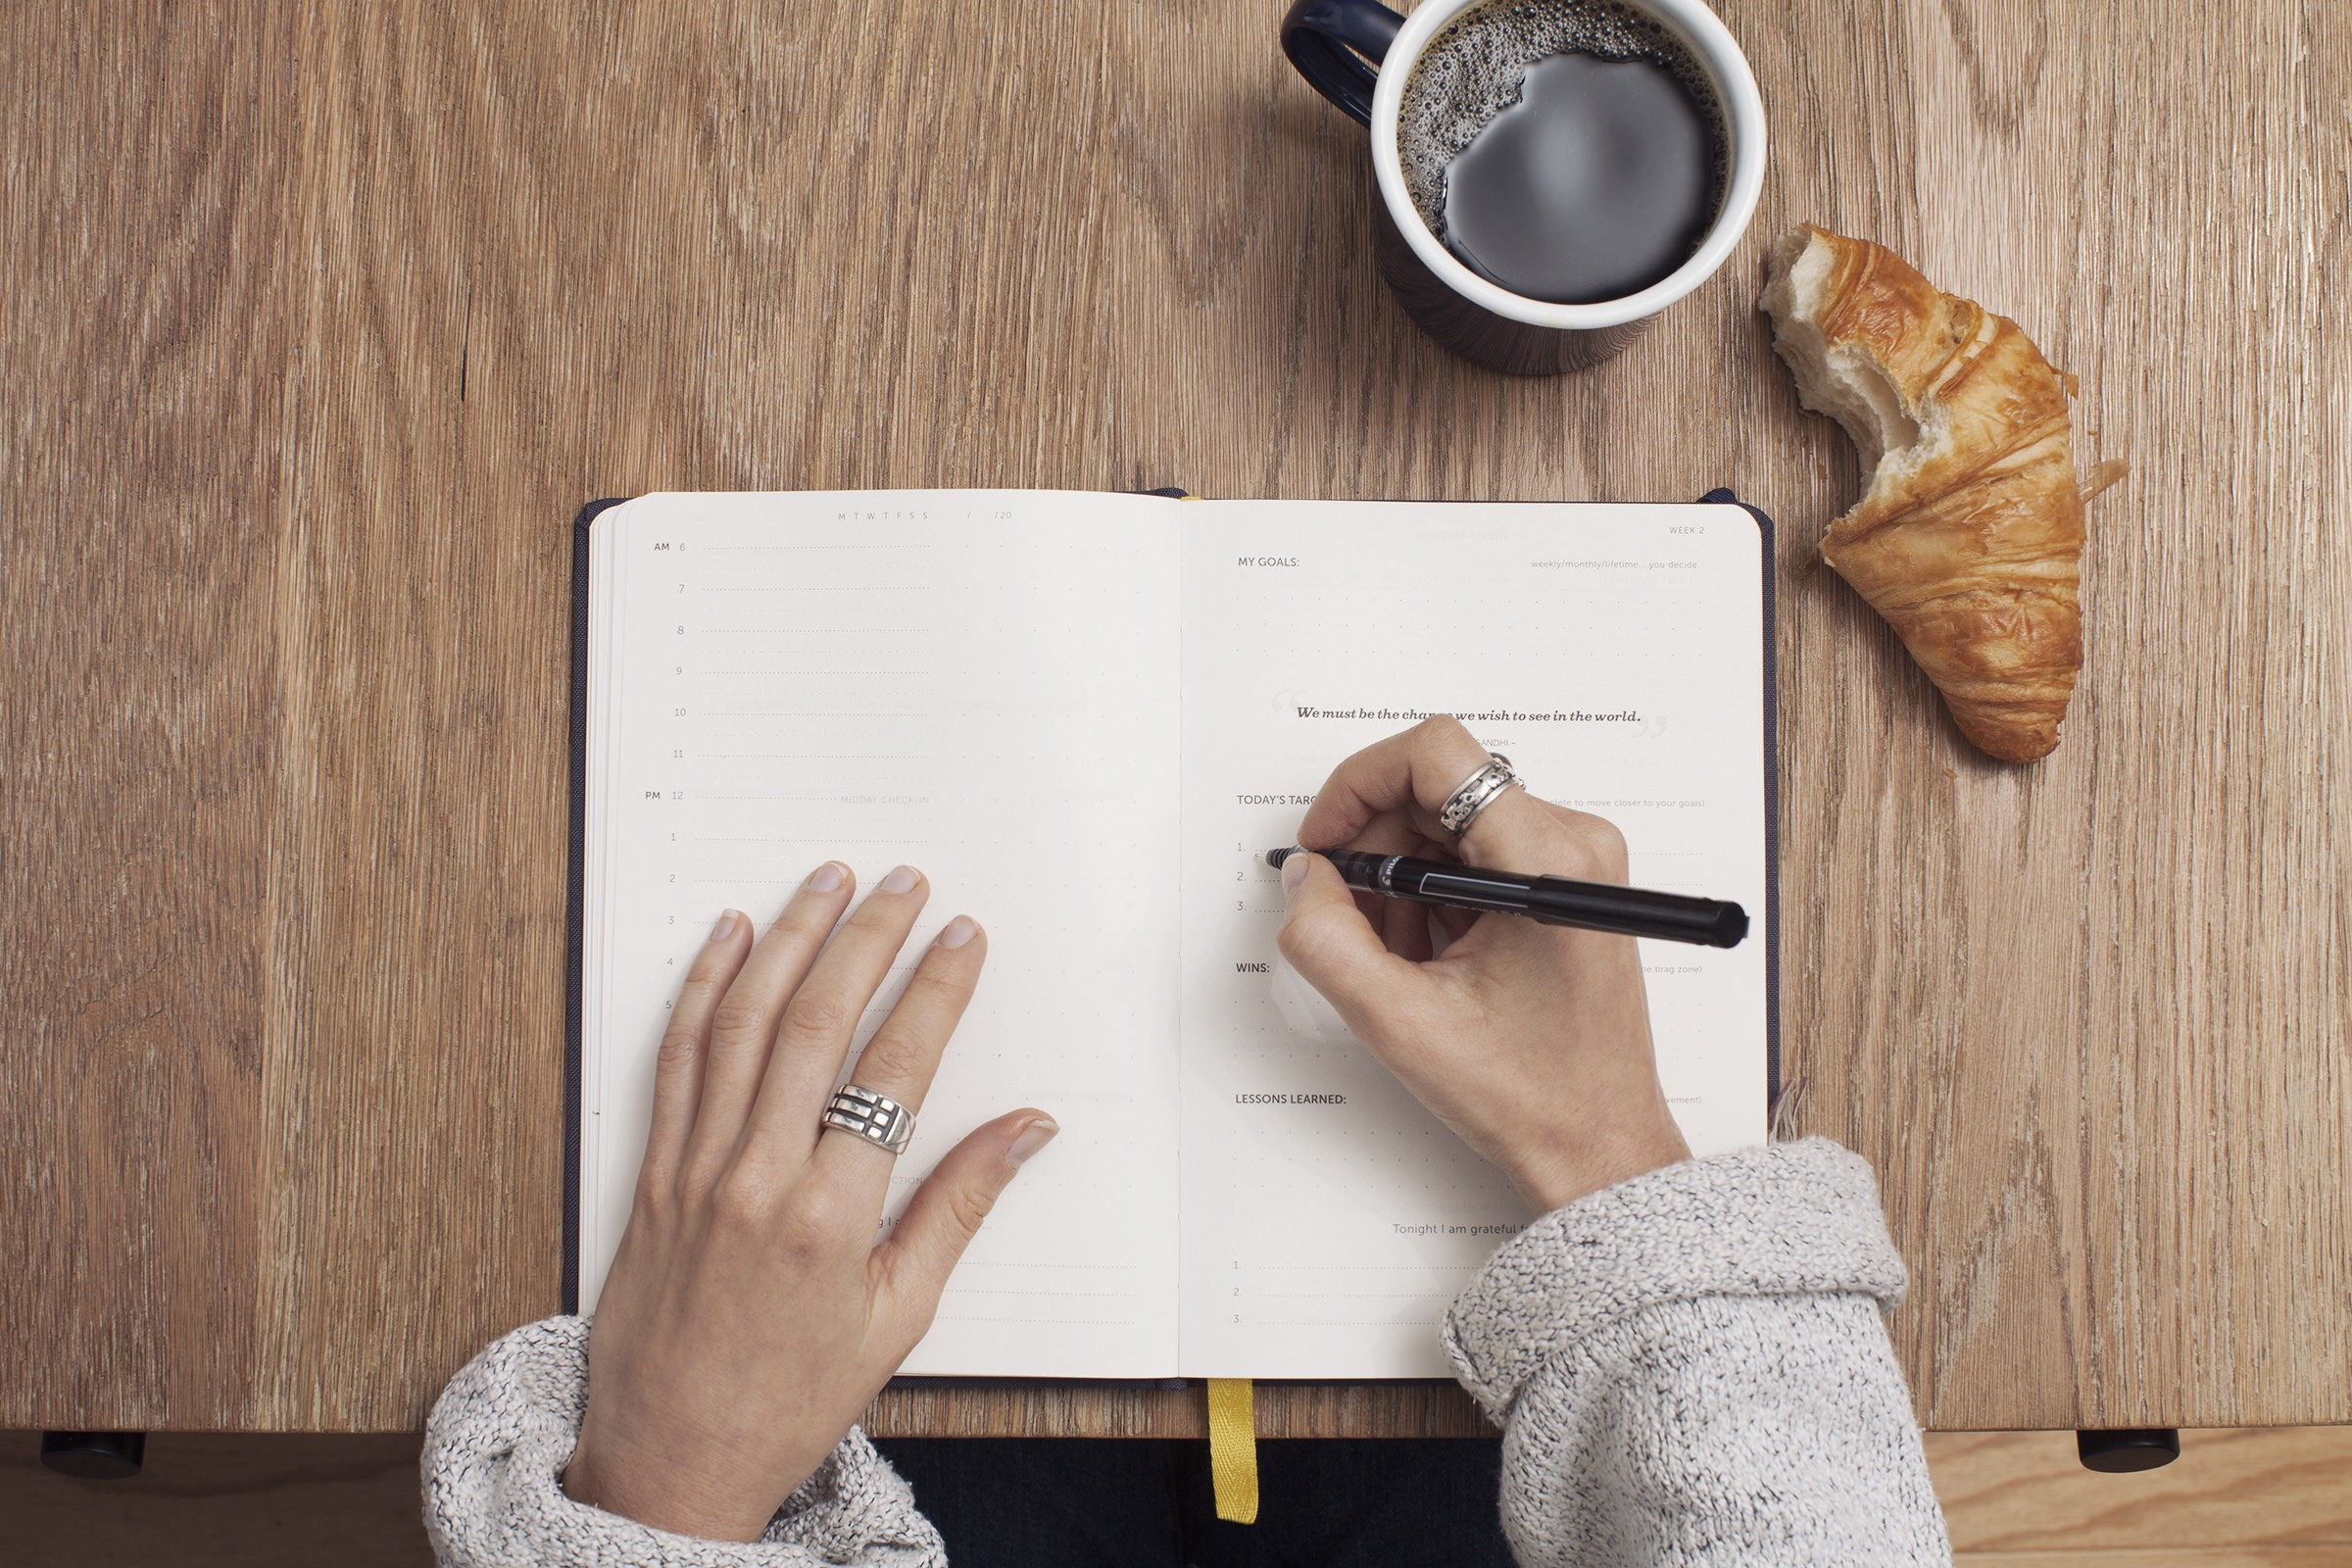 A woman writing in a notebook on a table. Coffee and Croissant to her right